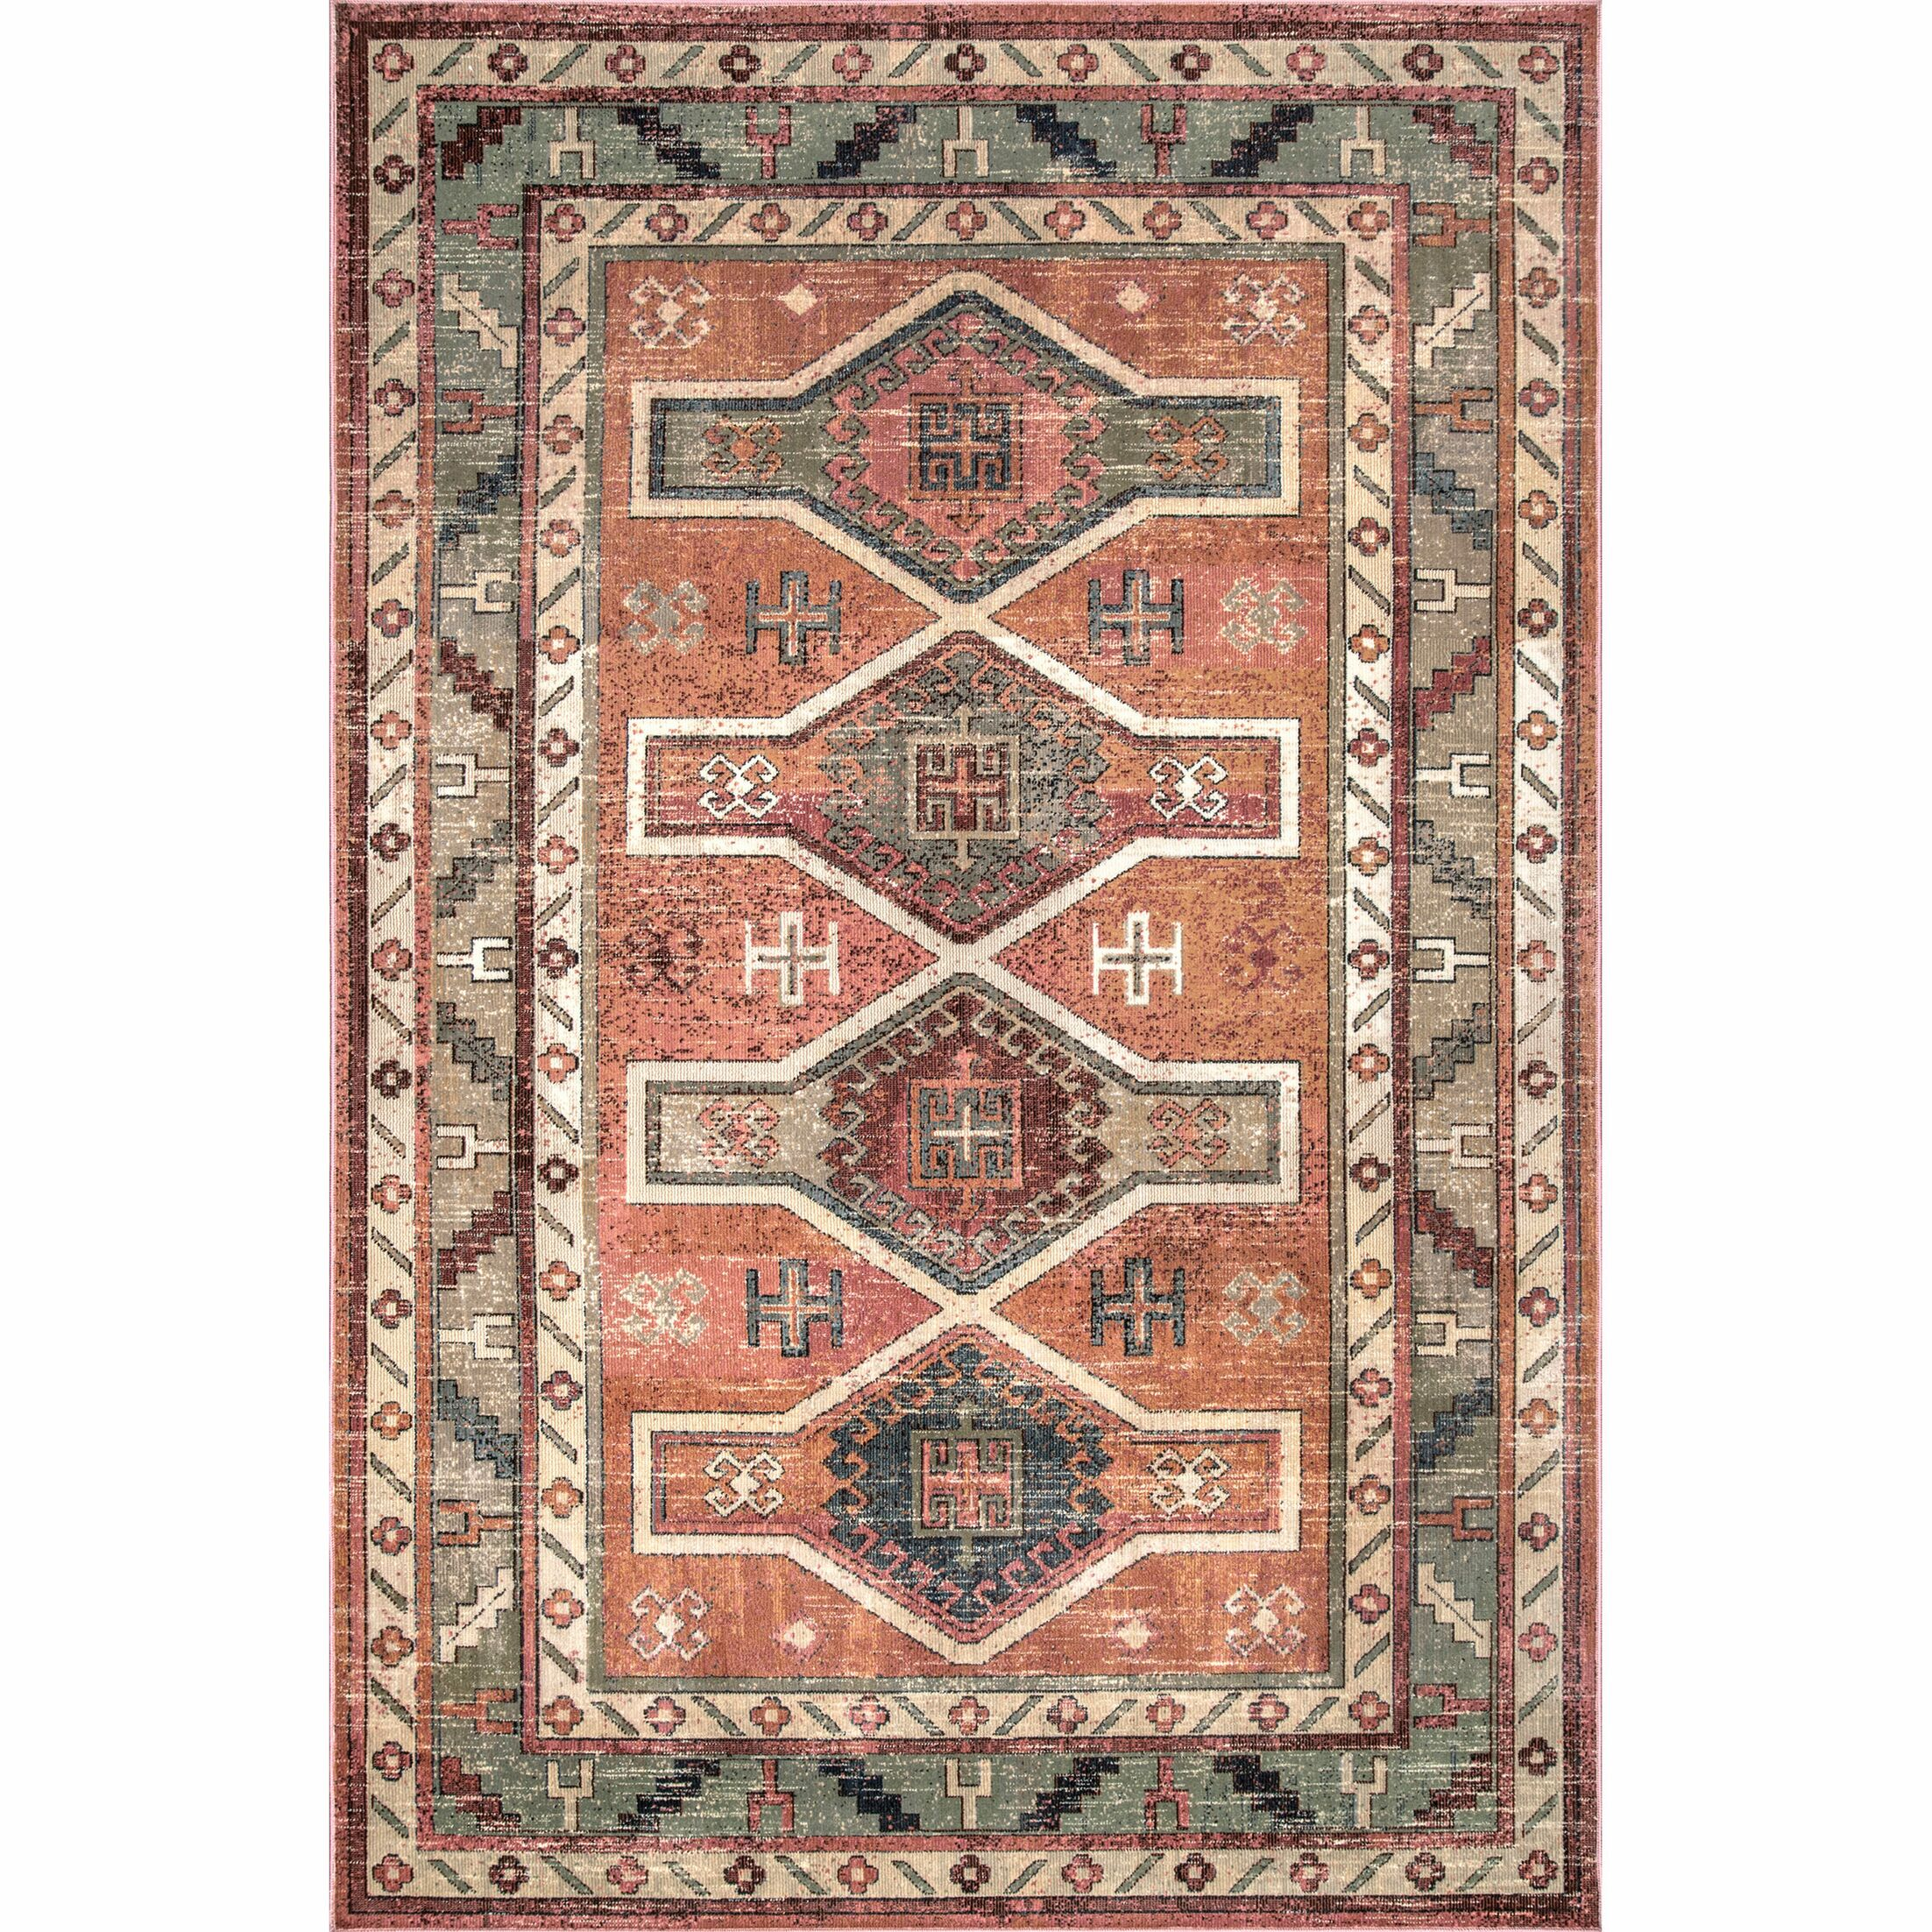 Abilene Orange/Red Area Rug Rug Size: Rectangle 7' 10